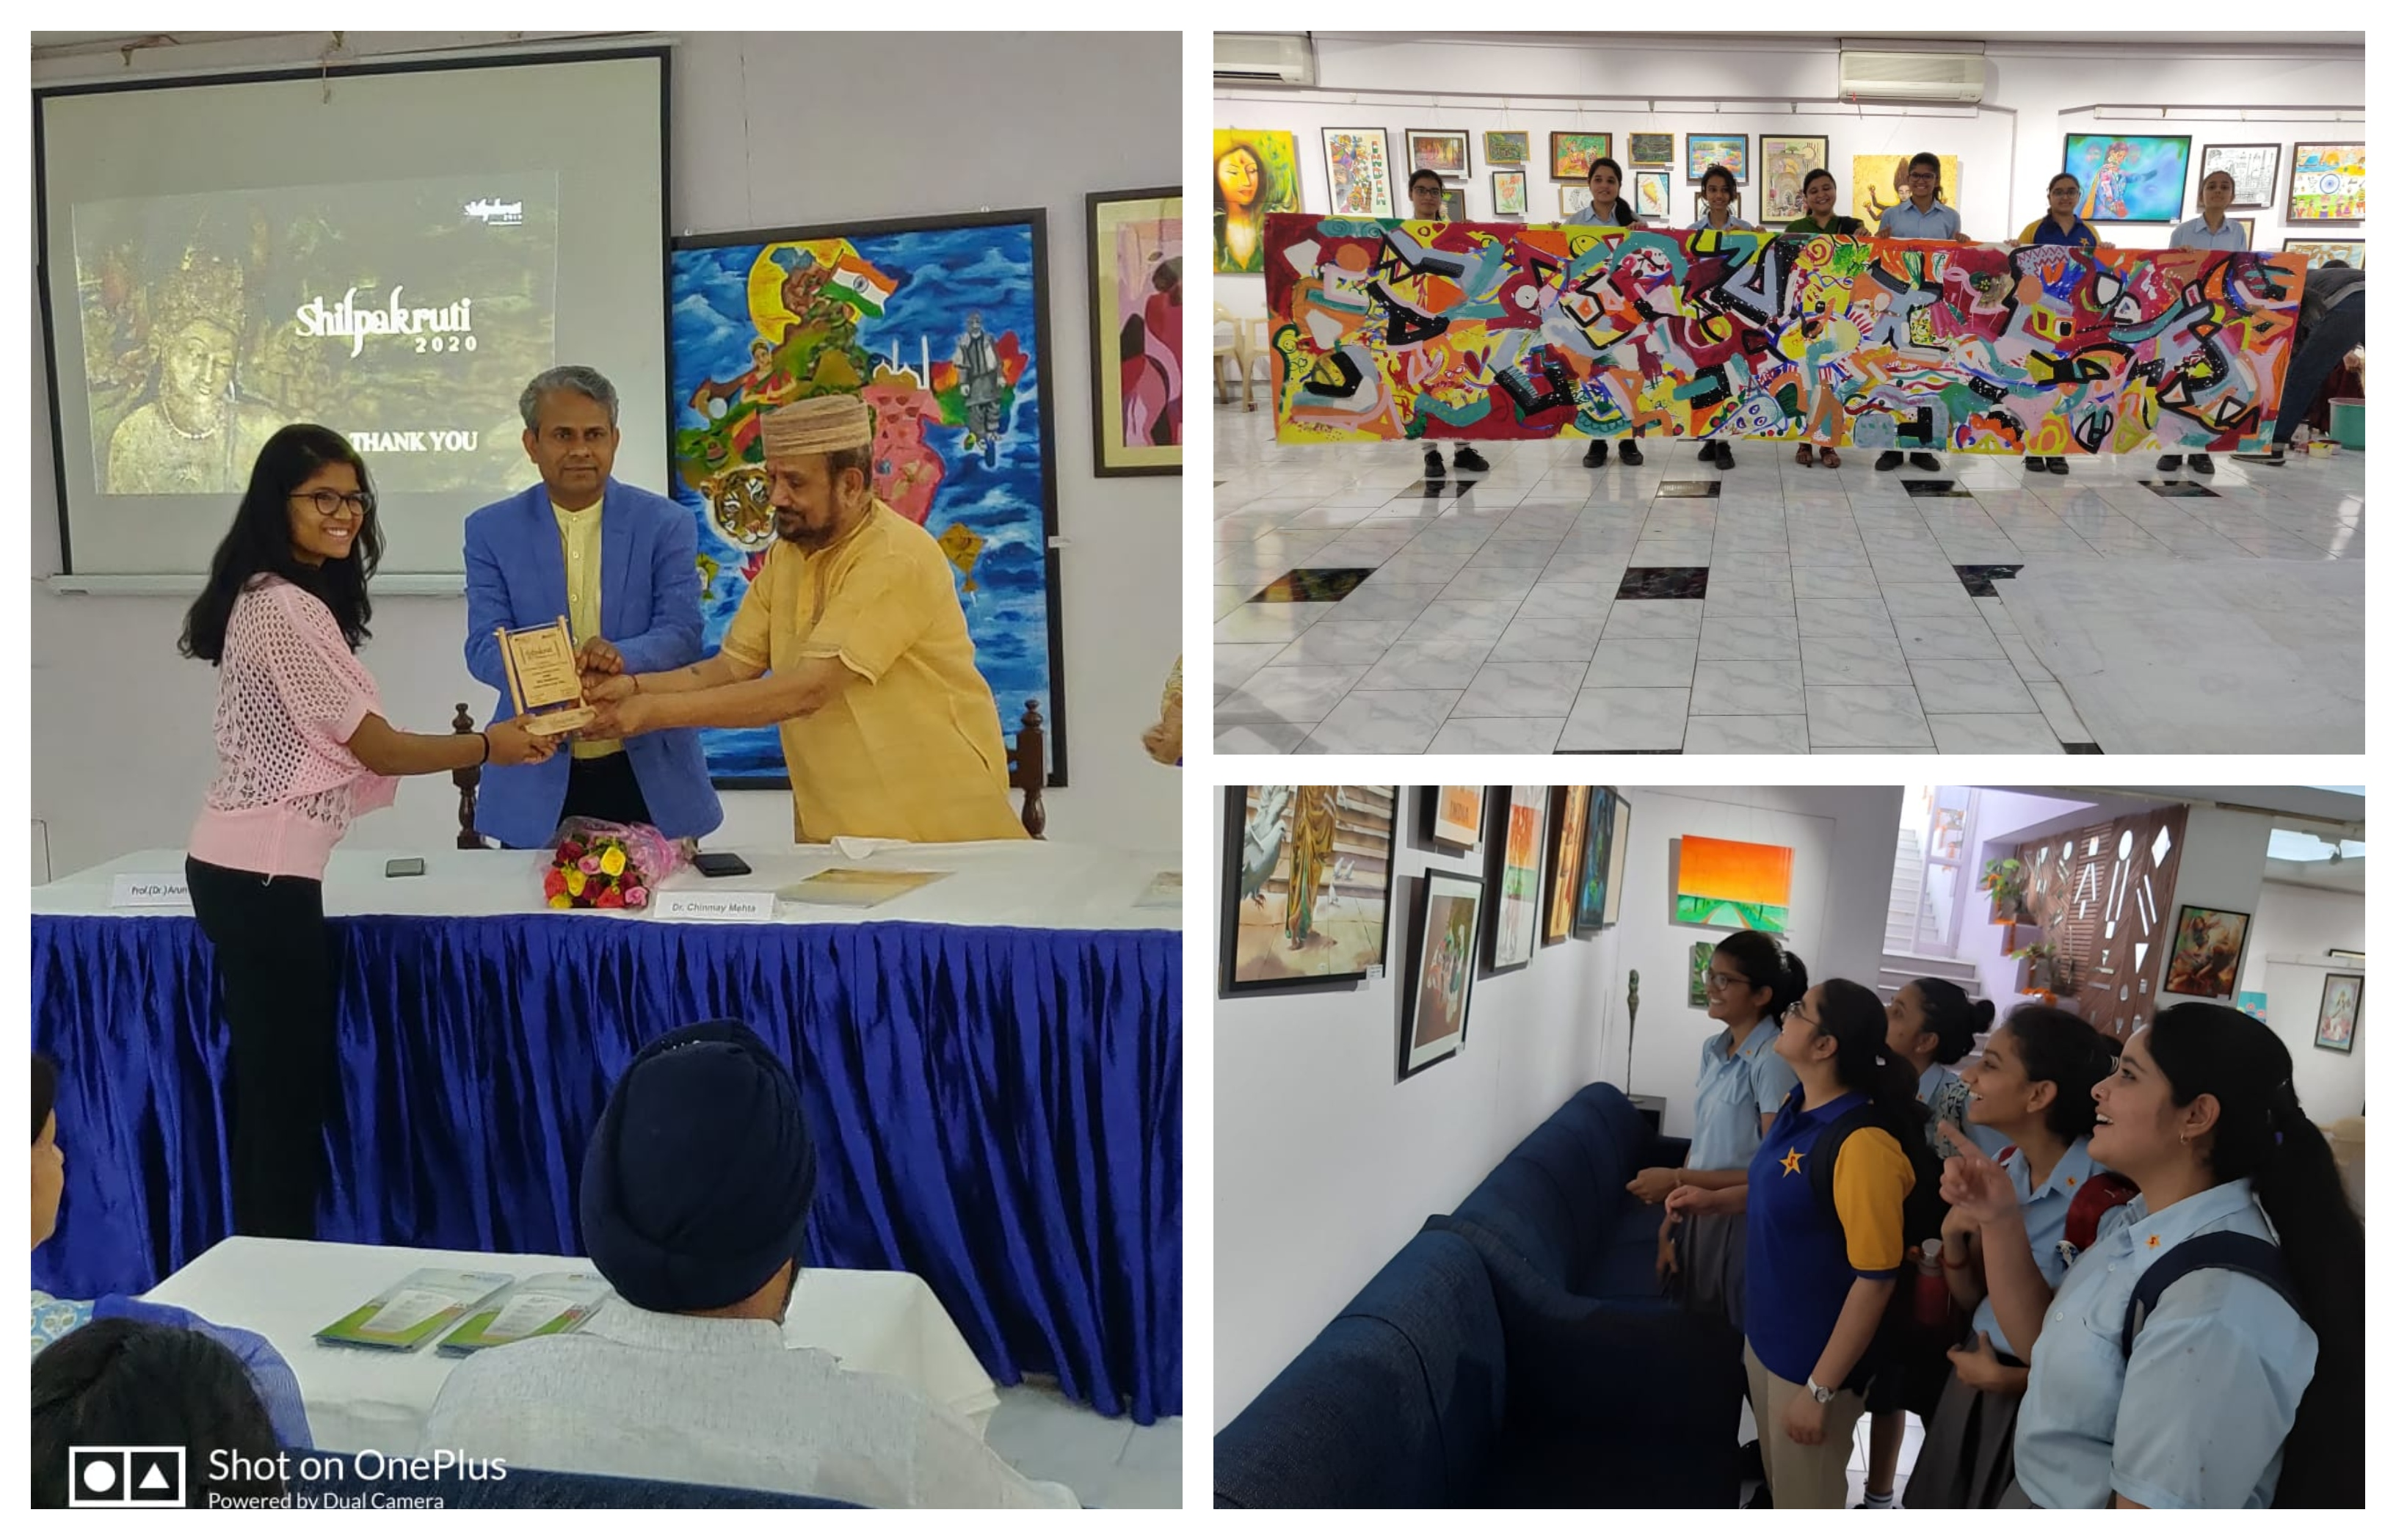 Sanskar student wins Painting Competition at Shilpakruti 2019